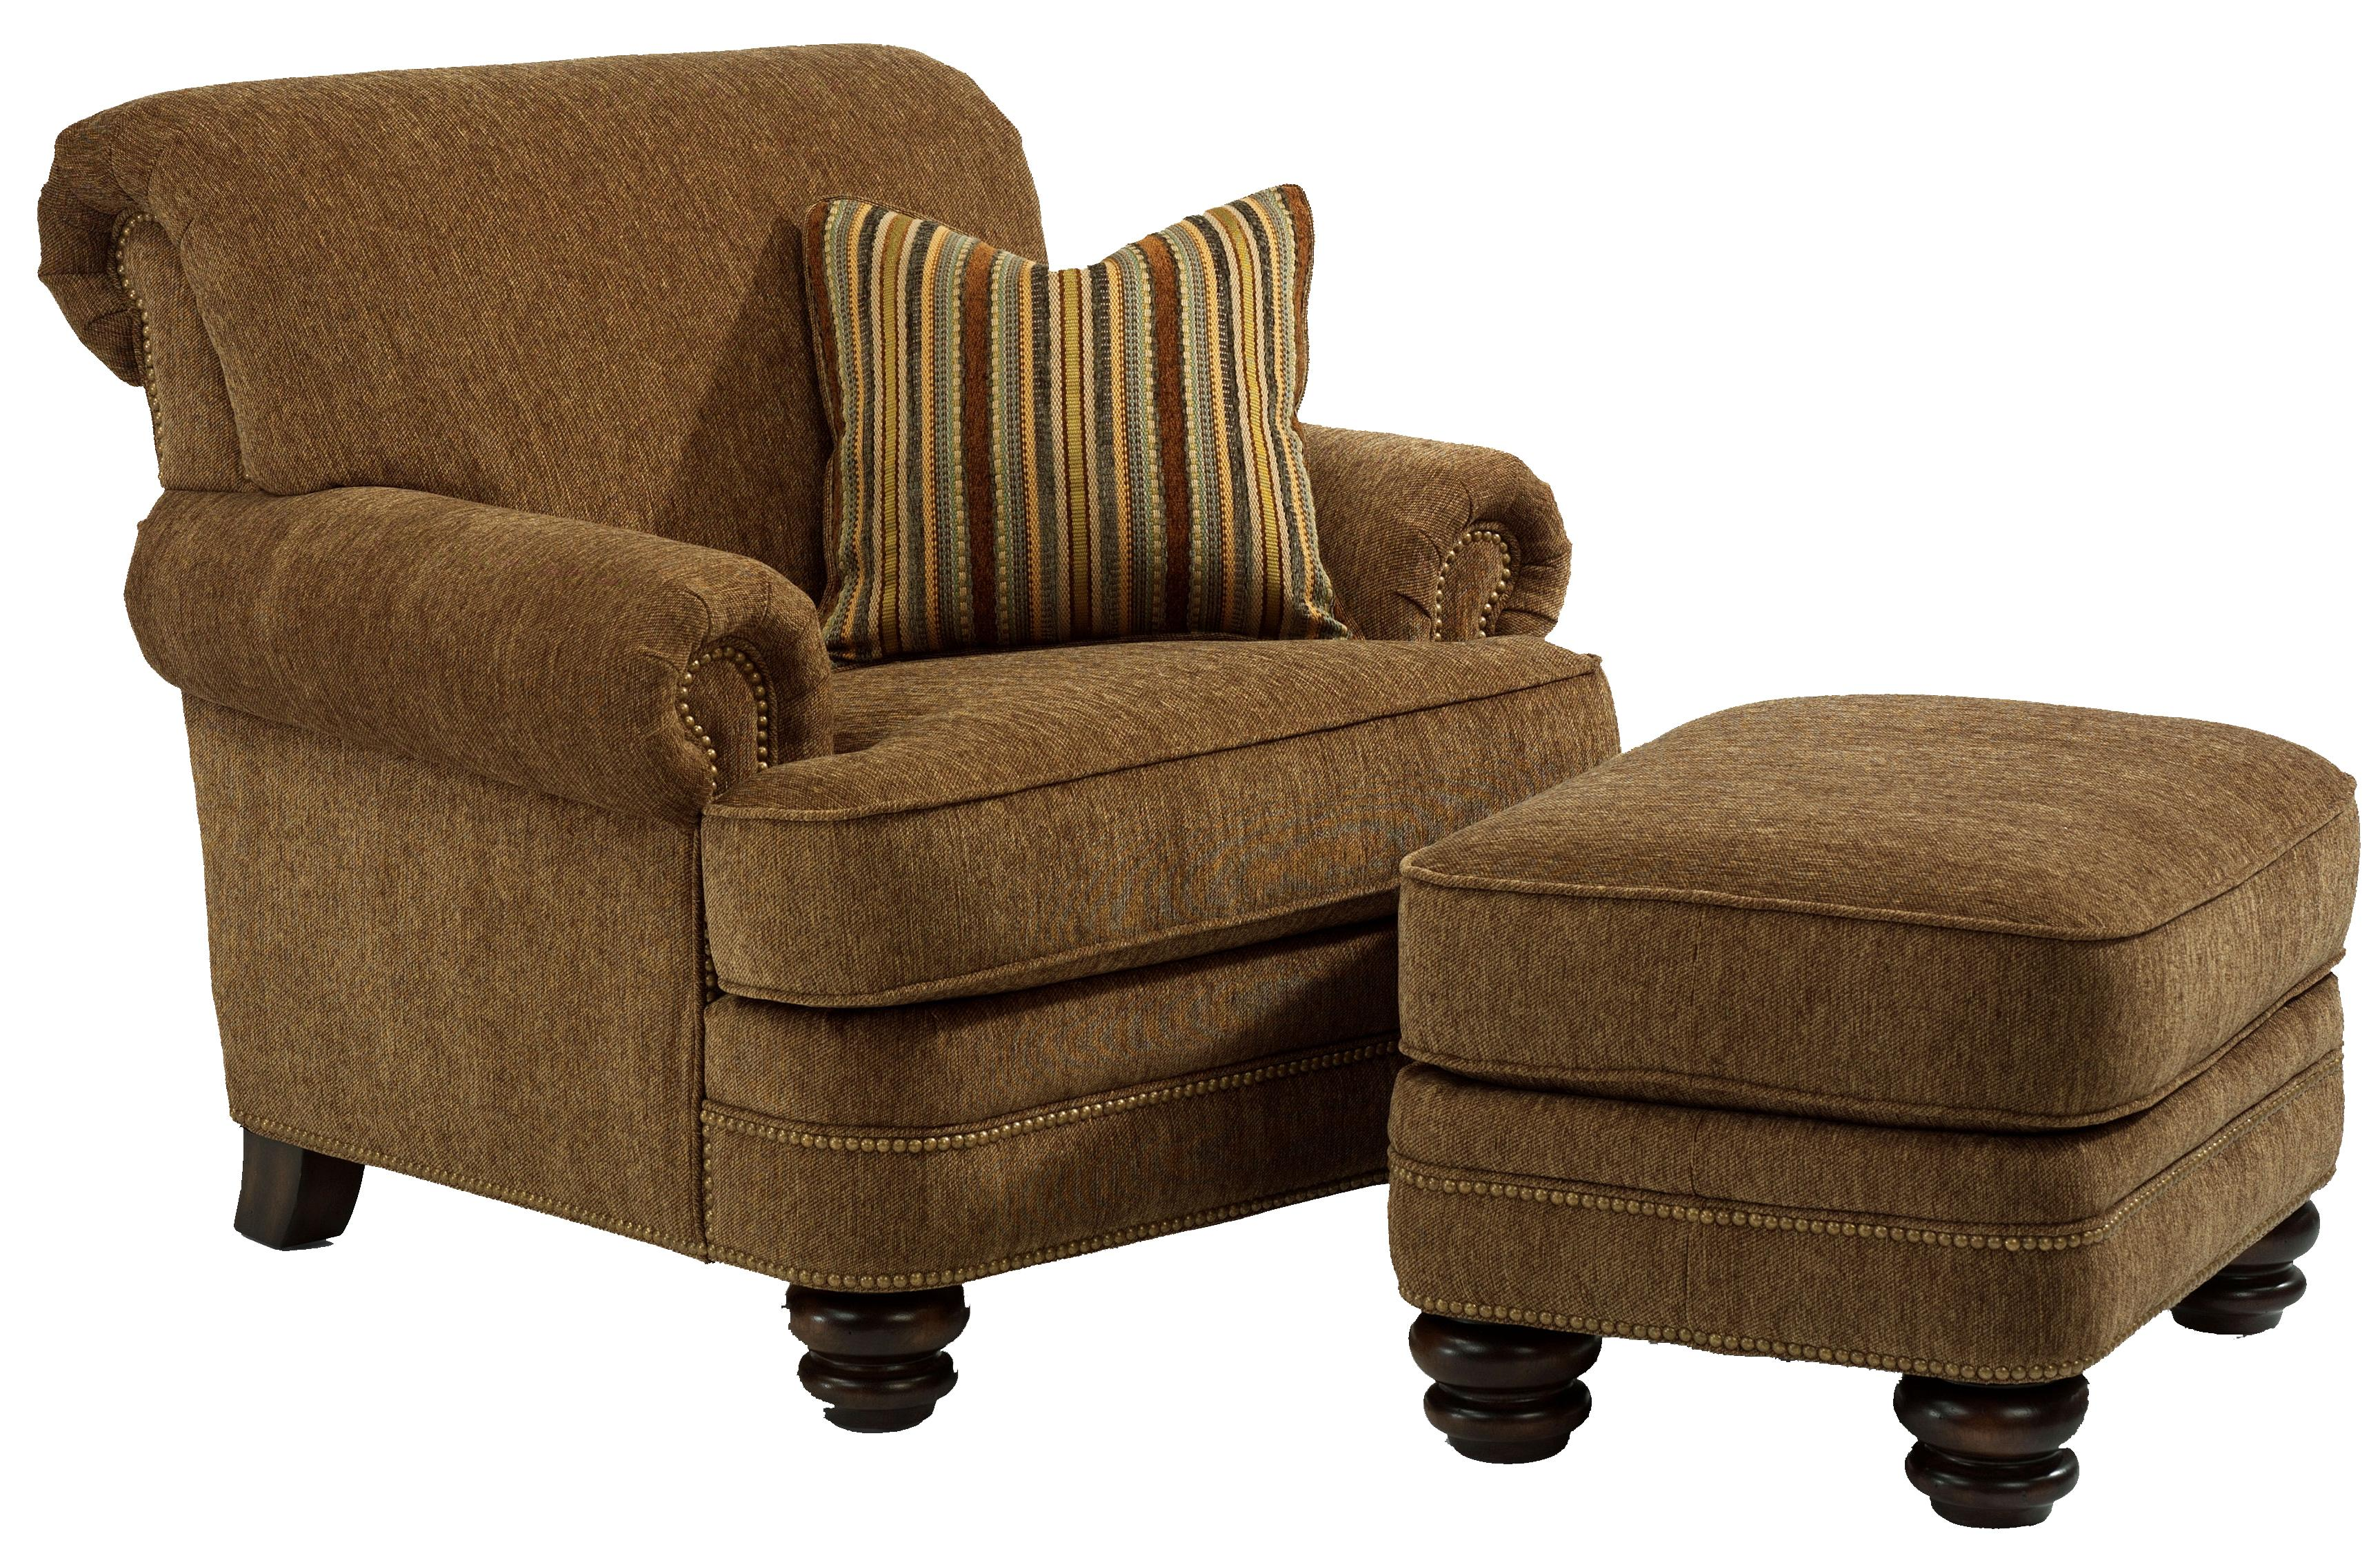 Chair Ottoman Fremont Traditional Rolled Back Chair Ottoman Set By Flexsteel At Crowley Furniture Mattress